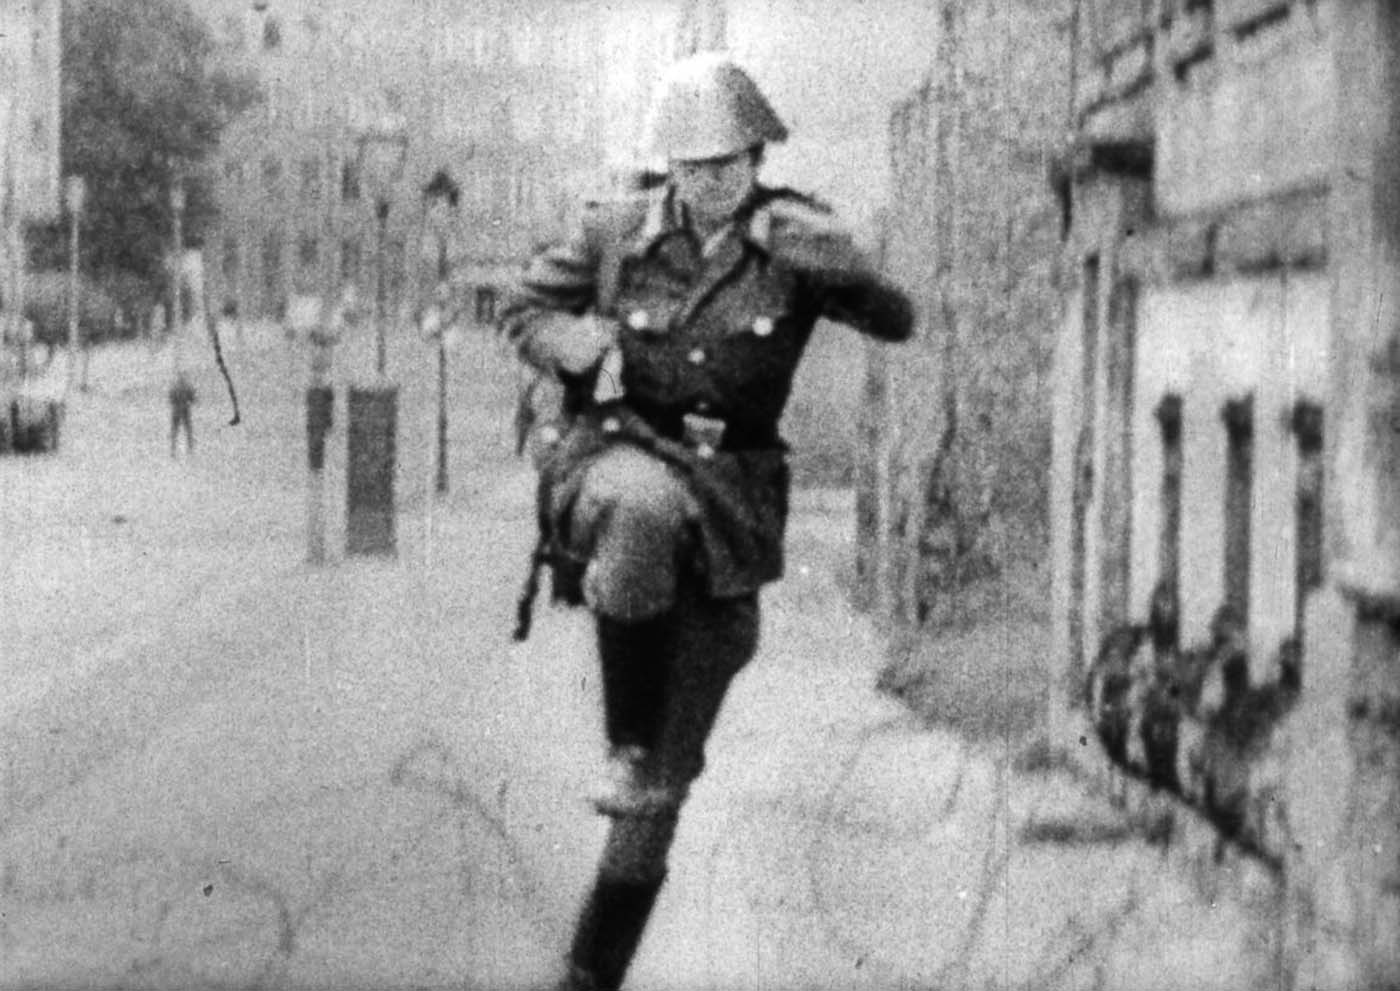 Schumann tossed aside his cigarette, then turned and ran for the coil of barbed wire that marked the boundary between East and West. (Still from the video footage).